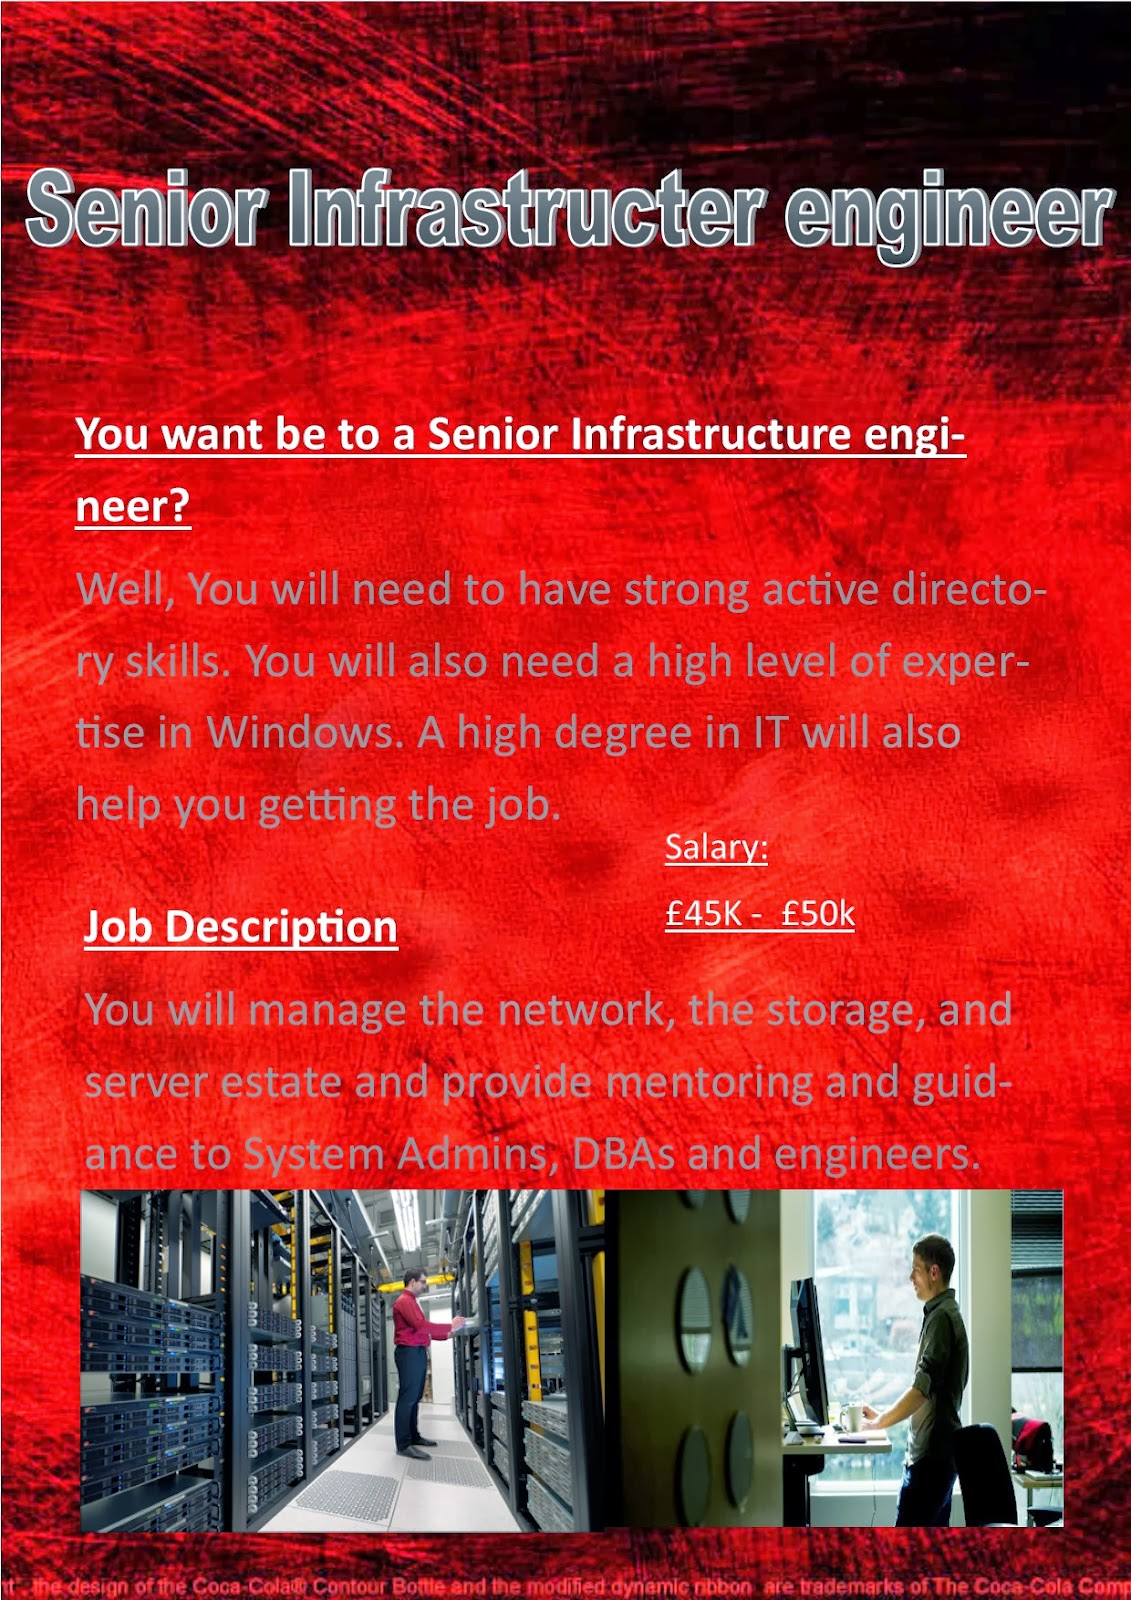 Poster design job description - This Is The Second Poster I Have Designed This Poster Is All About Teaching It It Again Includes The Requirements For The Job The Job Description And